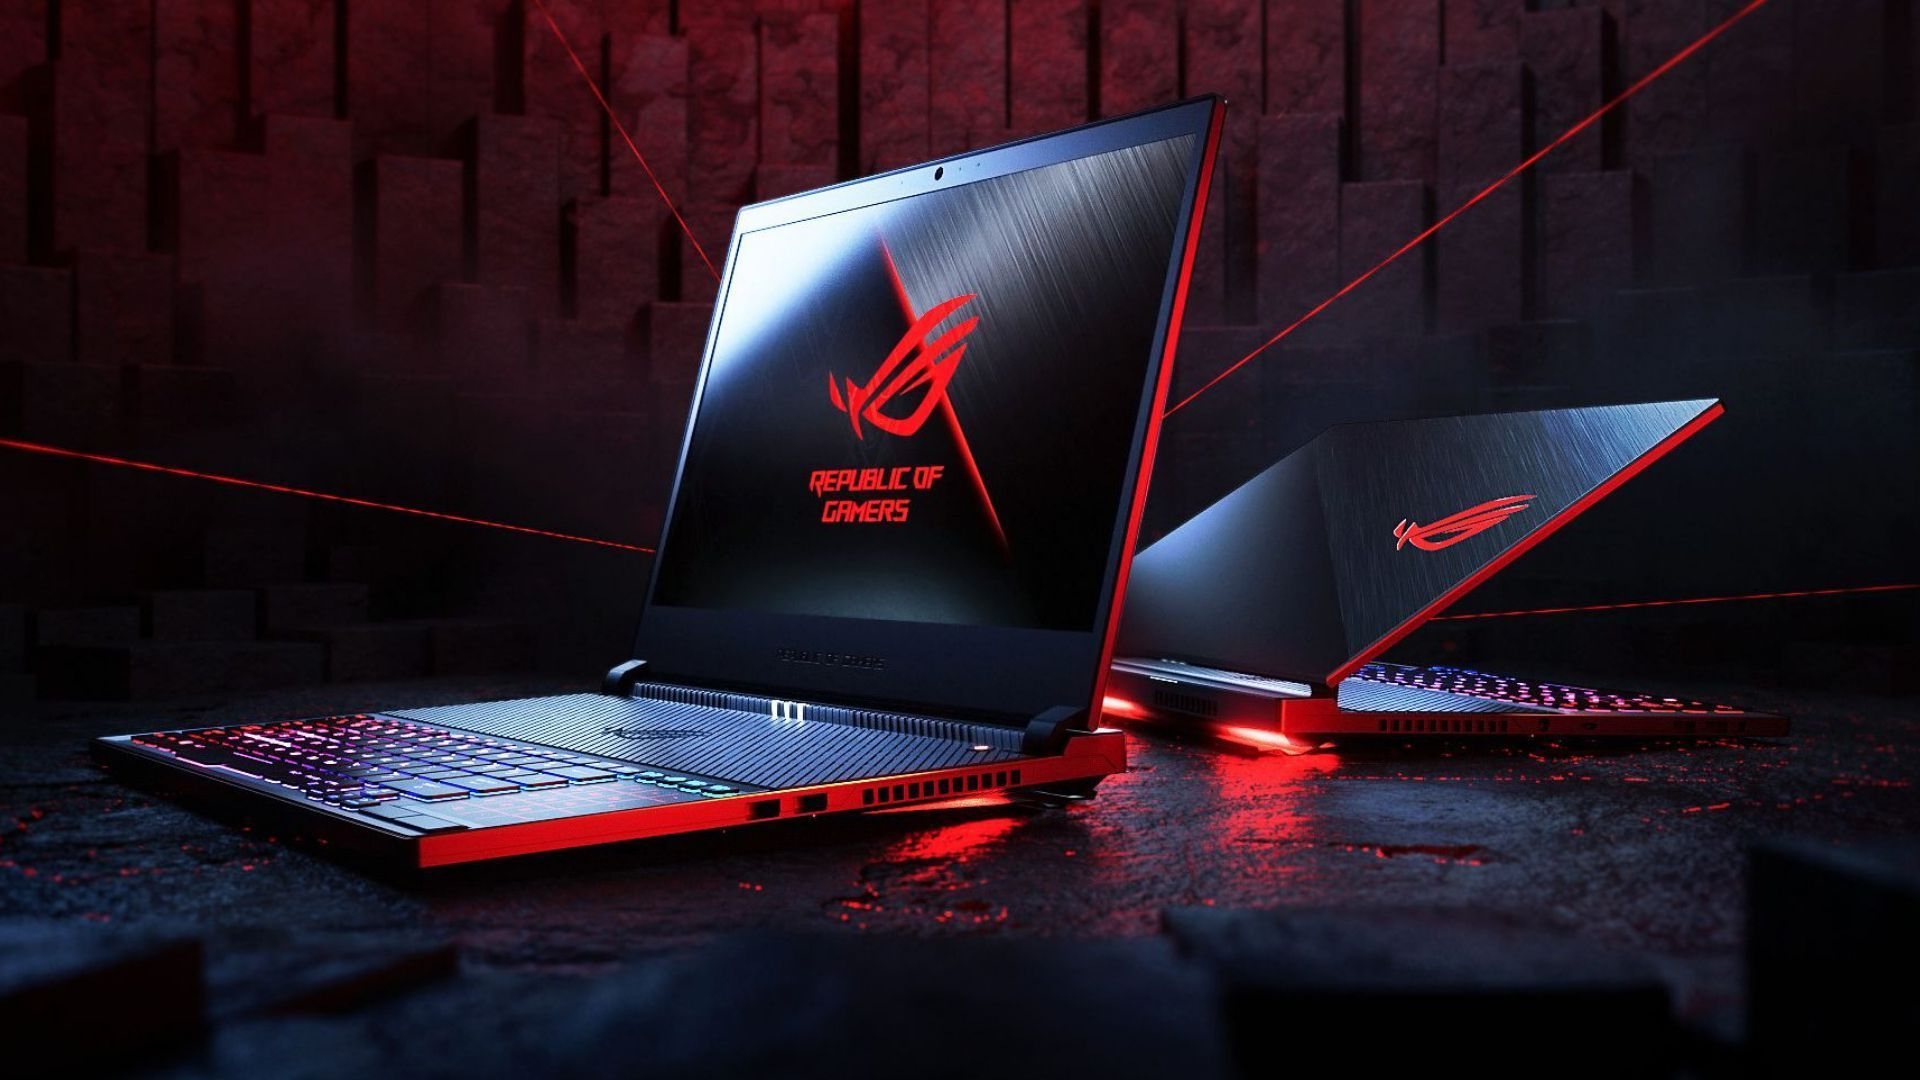 Best Laptop for Gaming Under 650